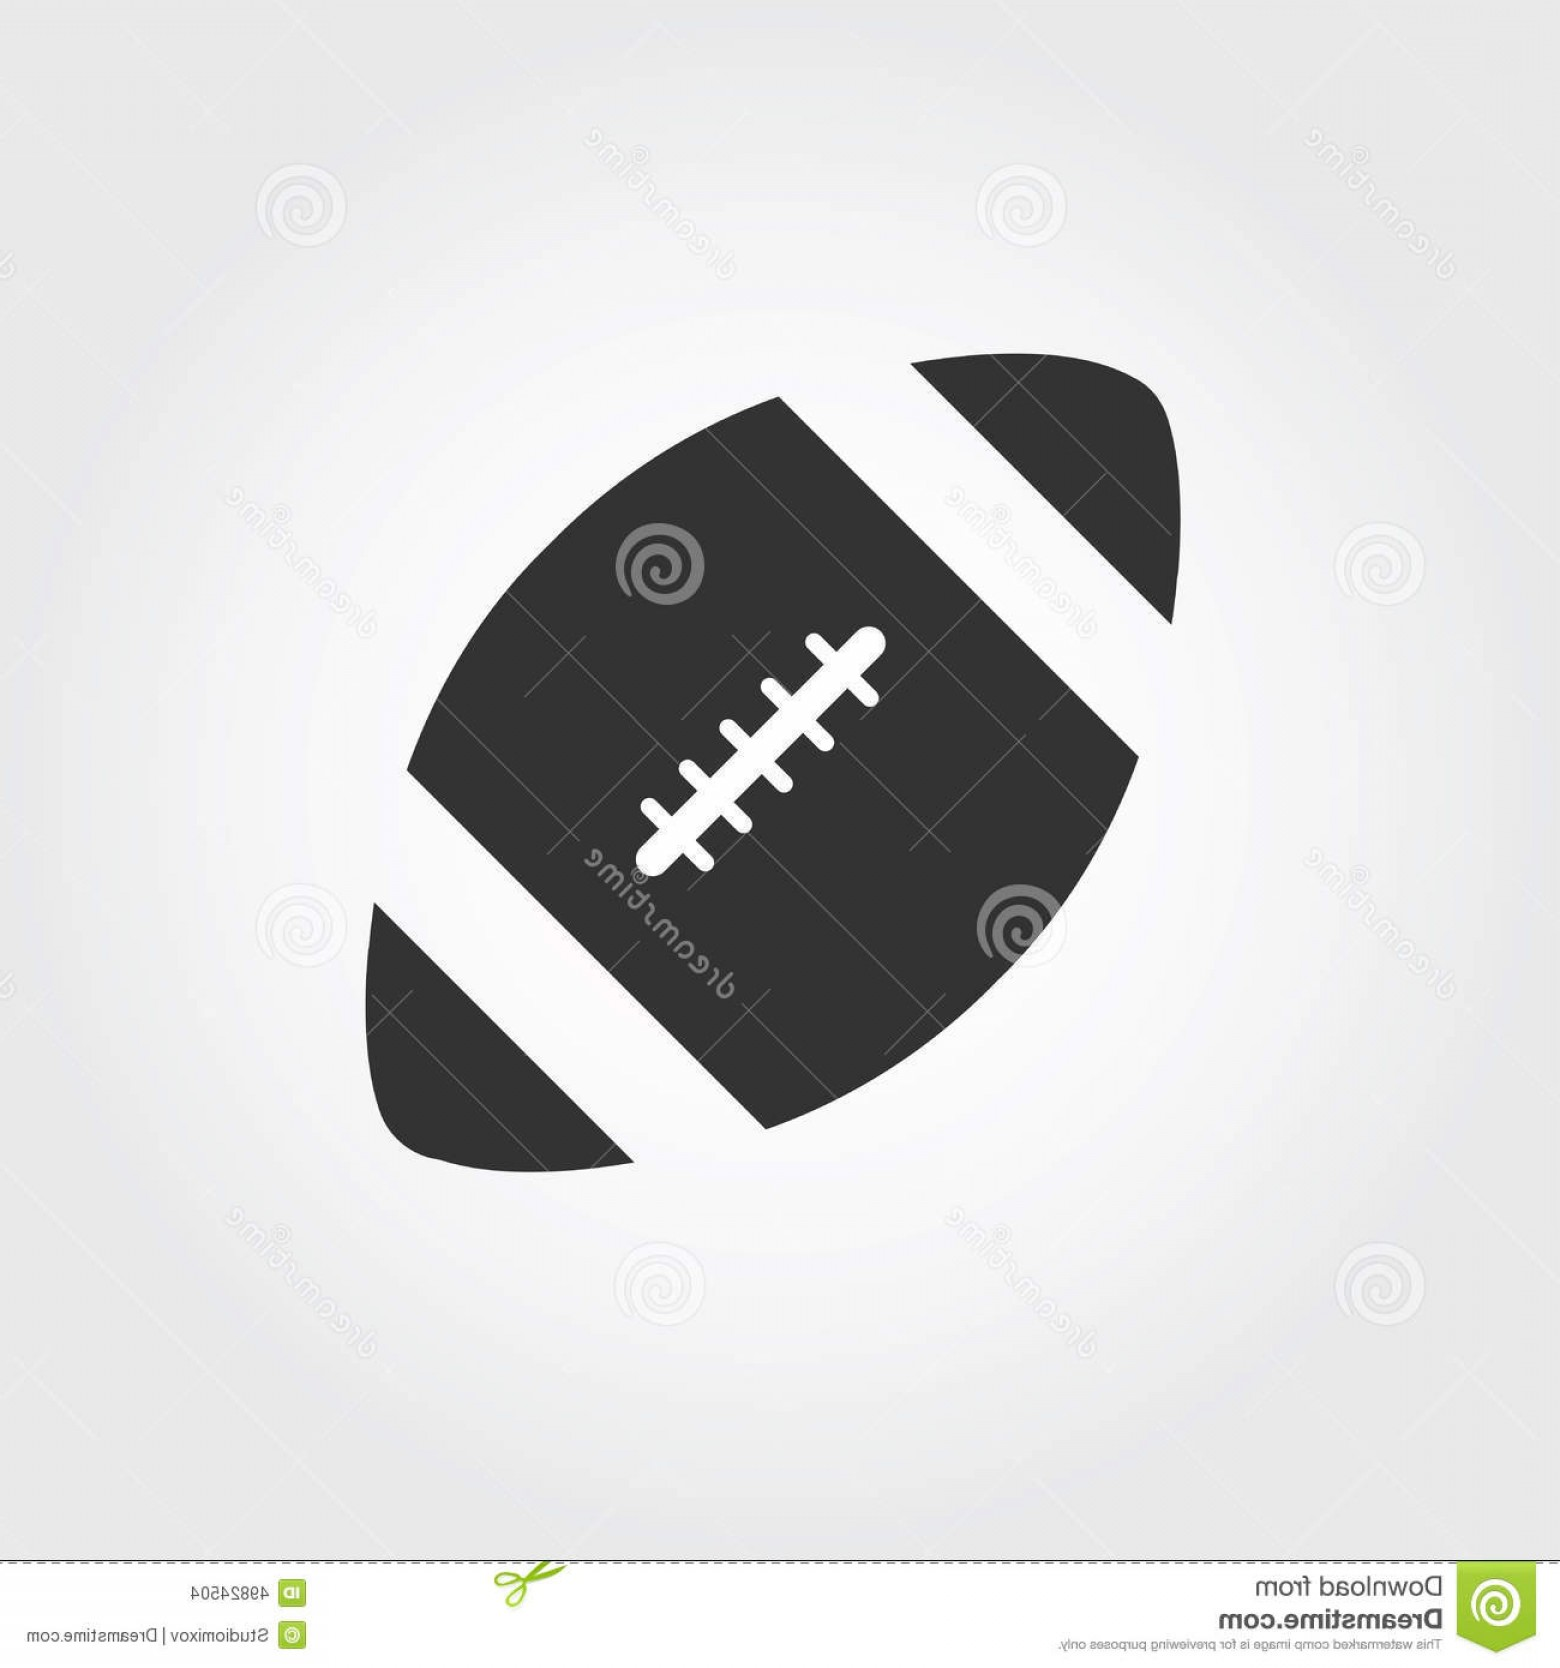 Black And White Vector American Football: Stock Illustration American Football Icon Flat Design Vector Image